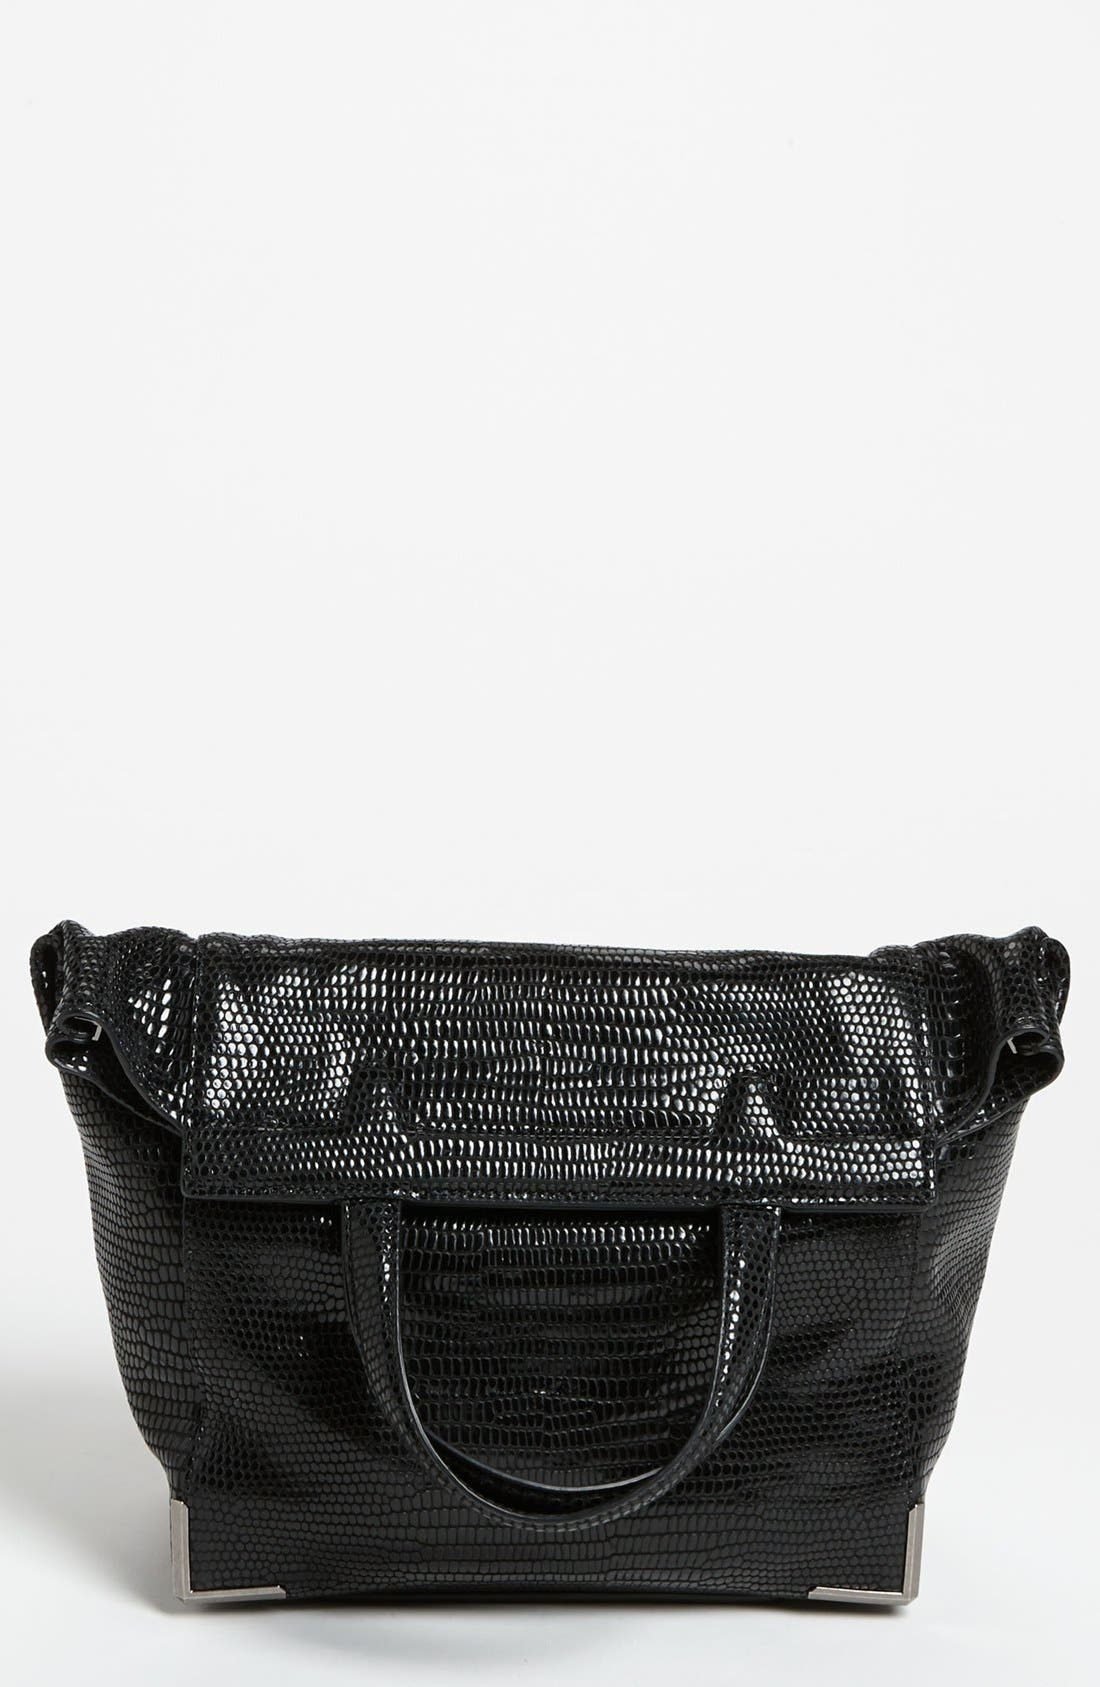 Alternate Image 1 Selected - Alexander Wang 'Prisma - Skeletal Lunchbag' Lizard Embossed Foldover Satchel